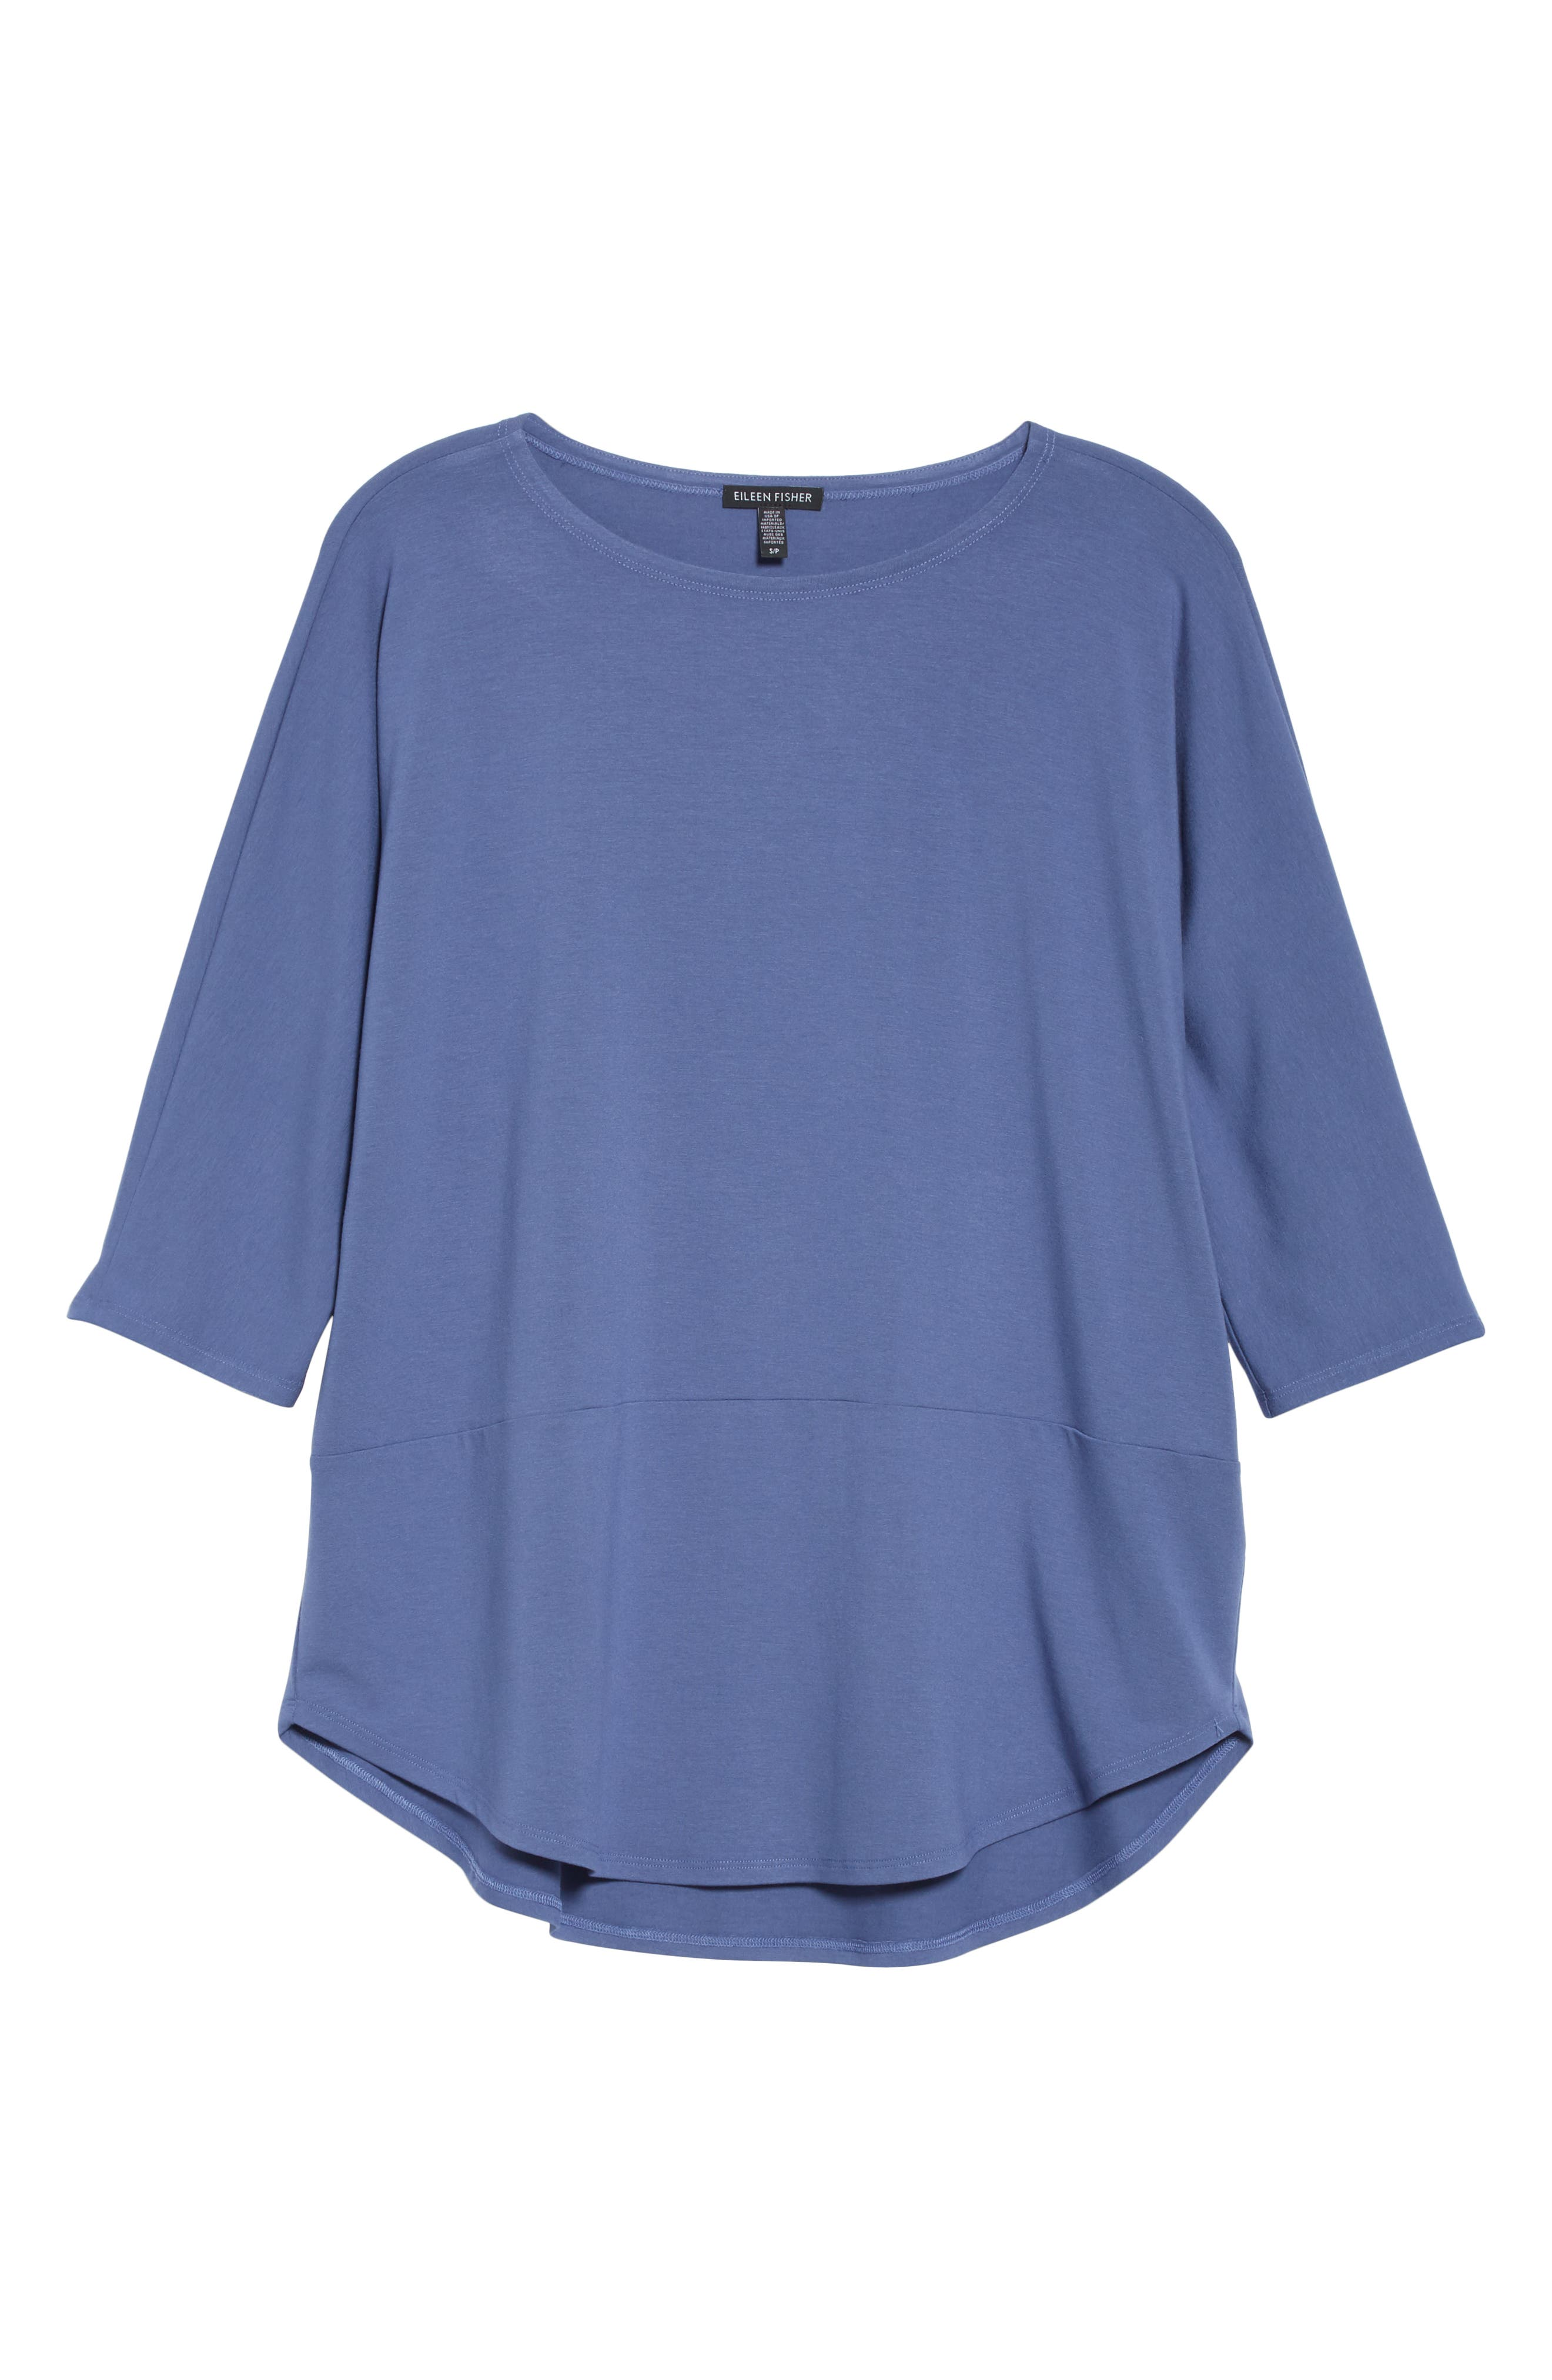 8ae4e4cc08f Women's Eileen Fisher Tops | Nordstrom